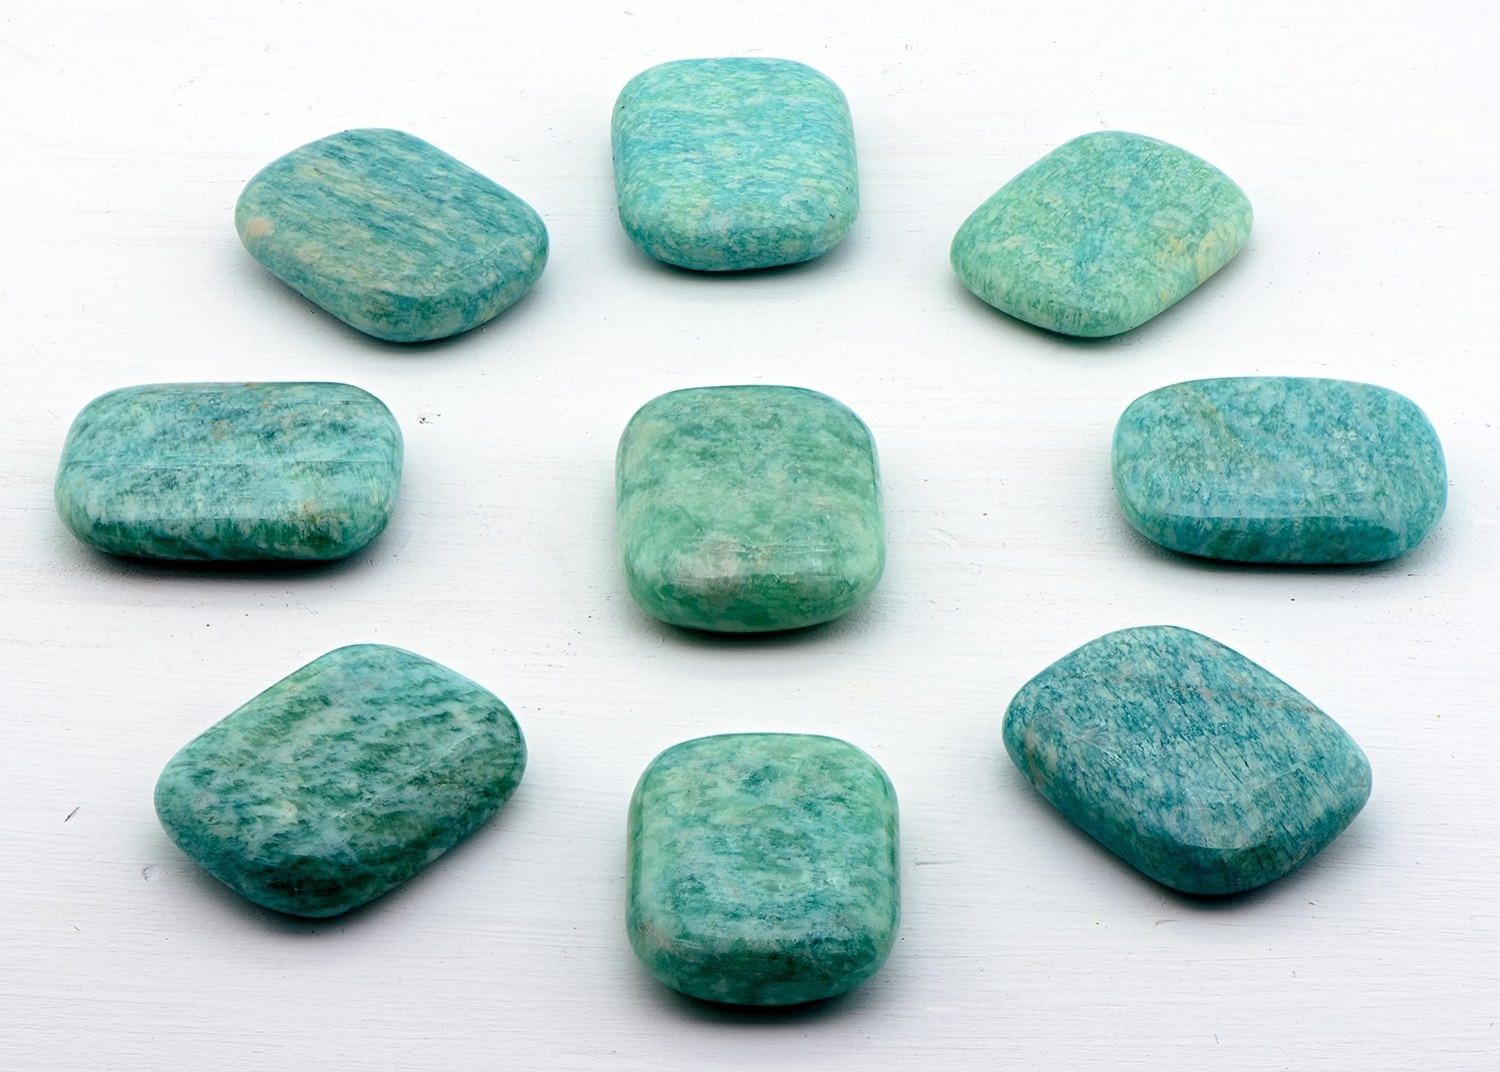 Amazonite Gemstone Pillows Creepy Hollows Altar Stones - Gemstone Of Spiritual Inspiration